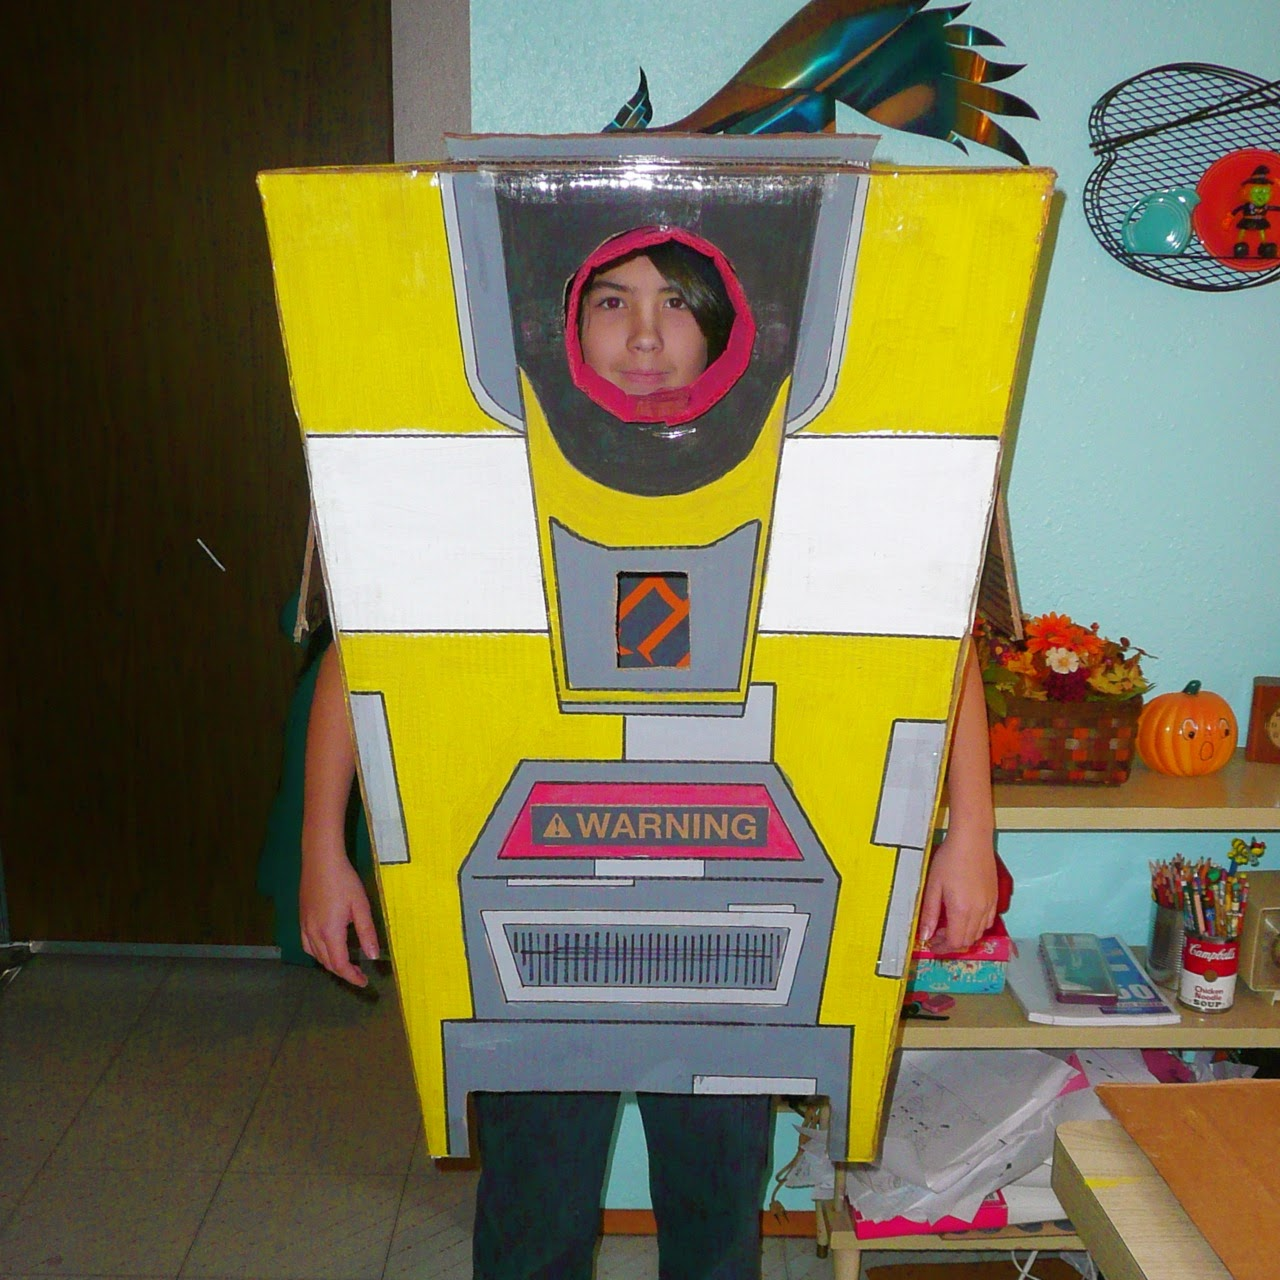 claptrap, costume, cardboard, appliance box, borderlands, video game, robot, cosplay, fall